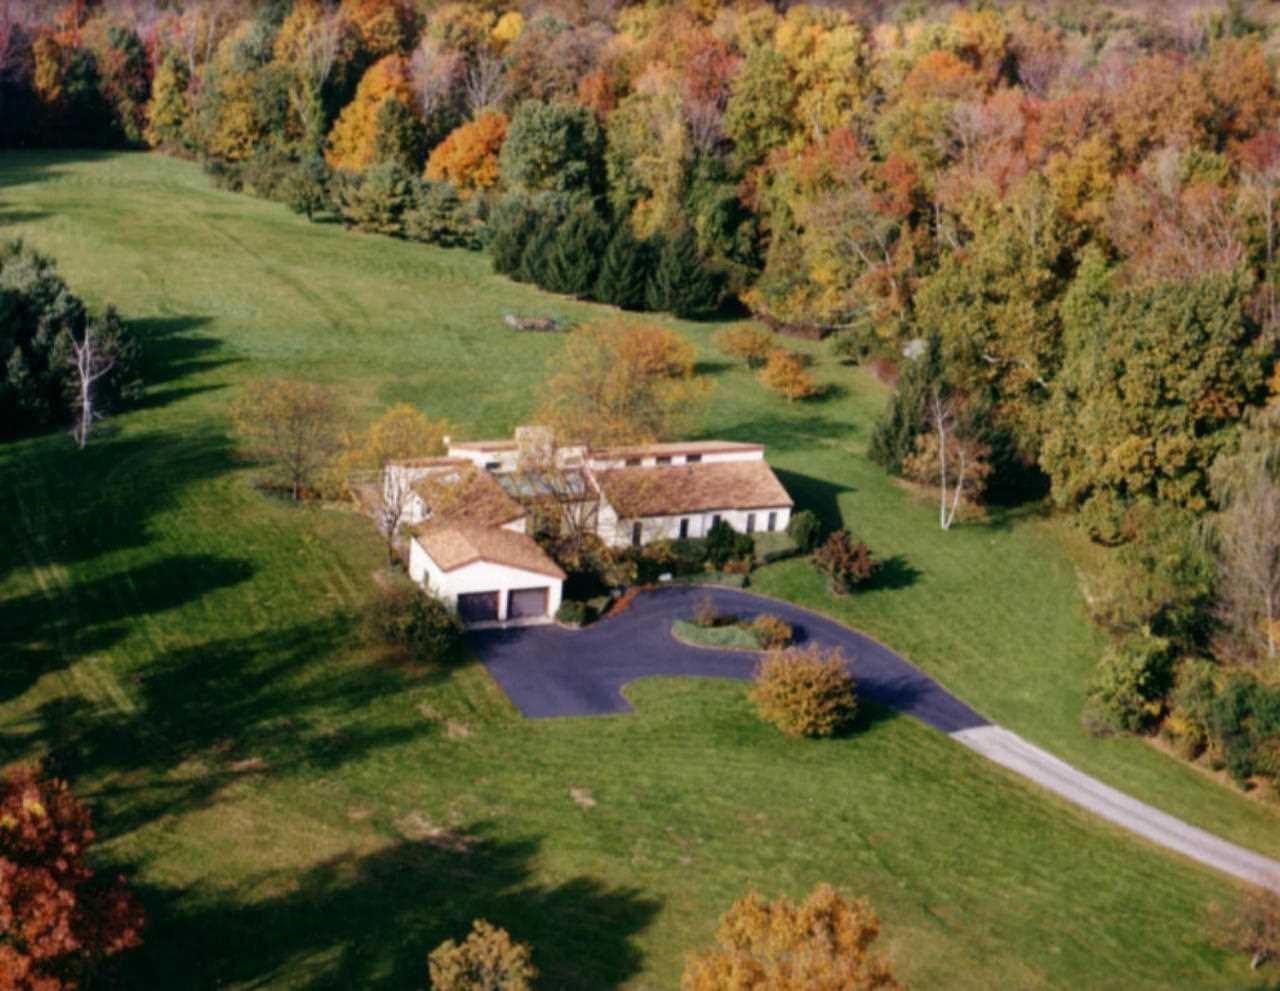 Single Family Home for Sale at 39 QUAKER HILL Road 39 QUAKER HILL Road Pawling, New York 12564 United States